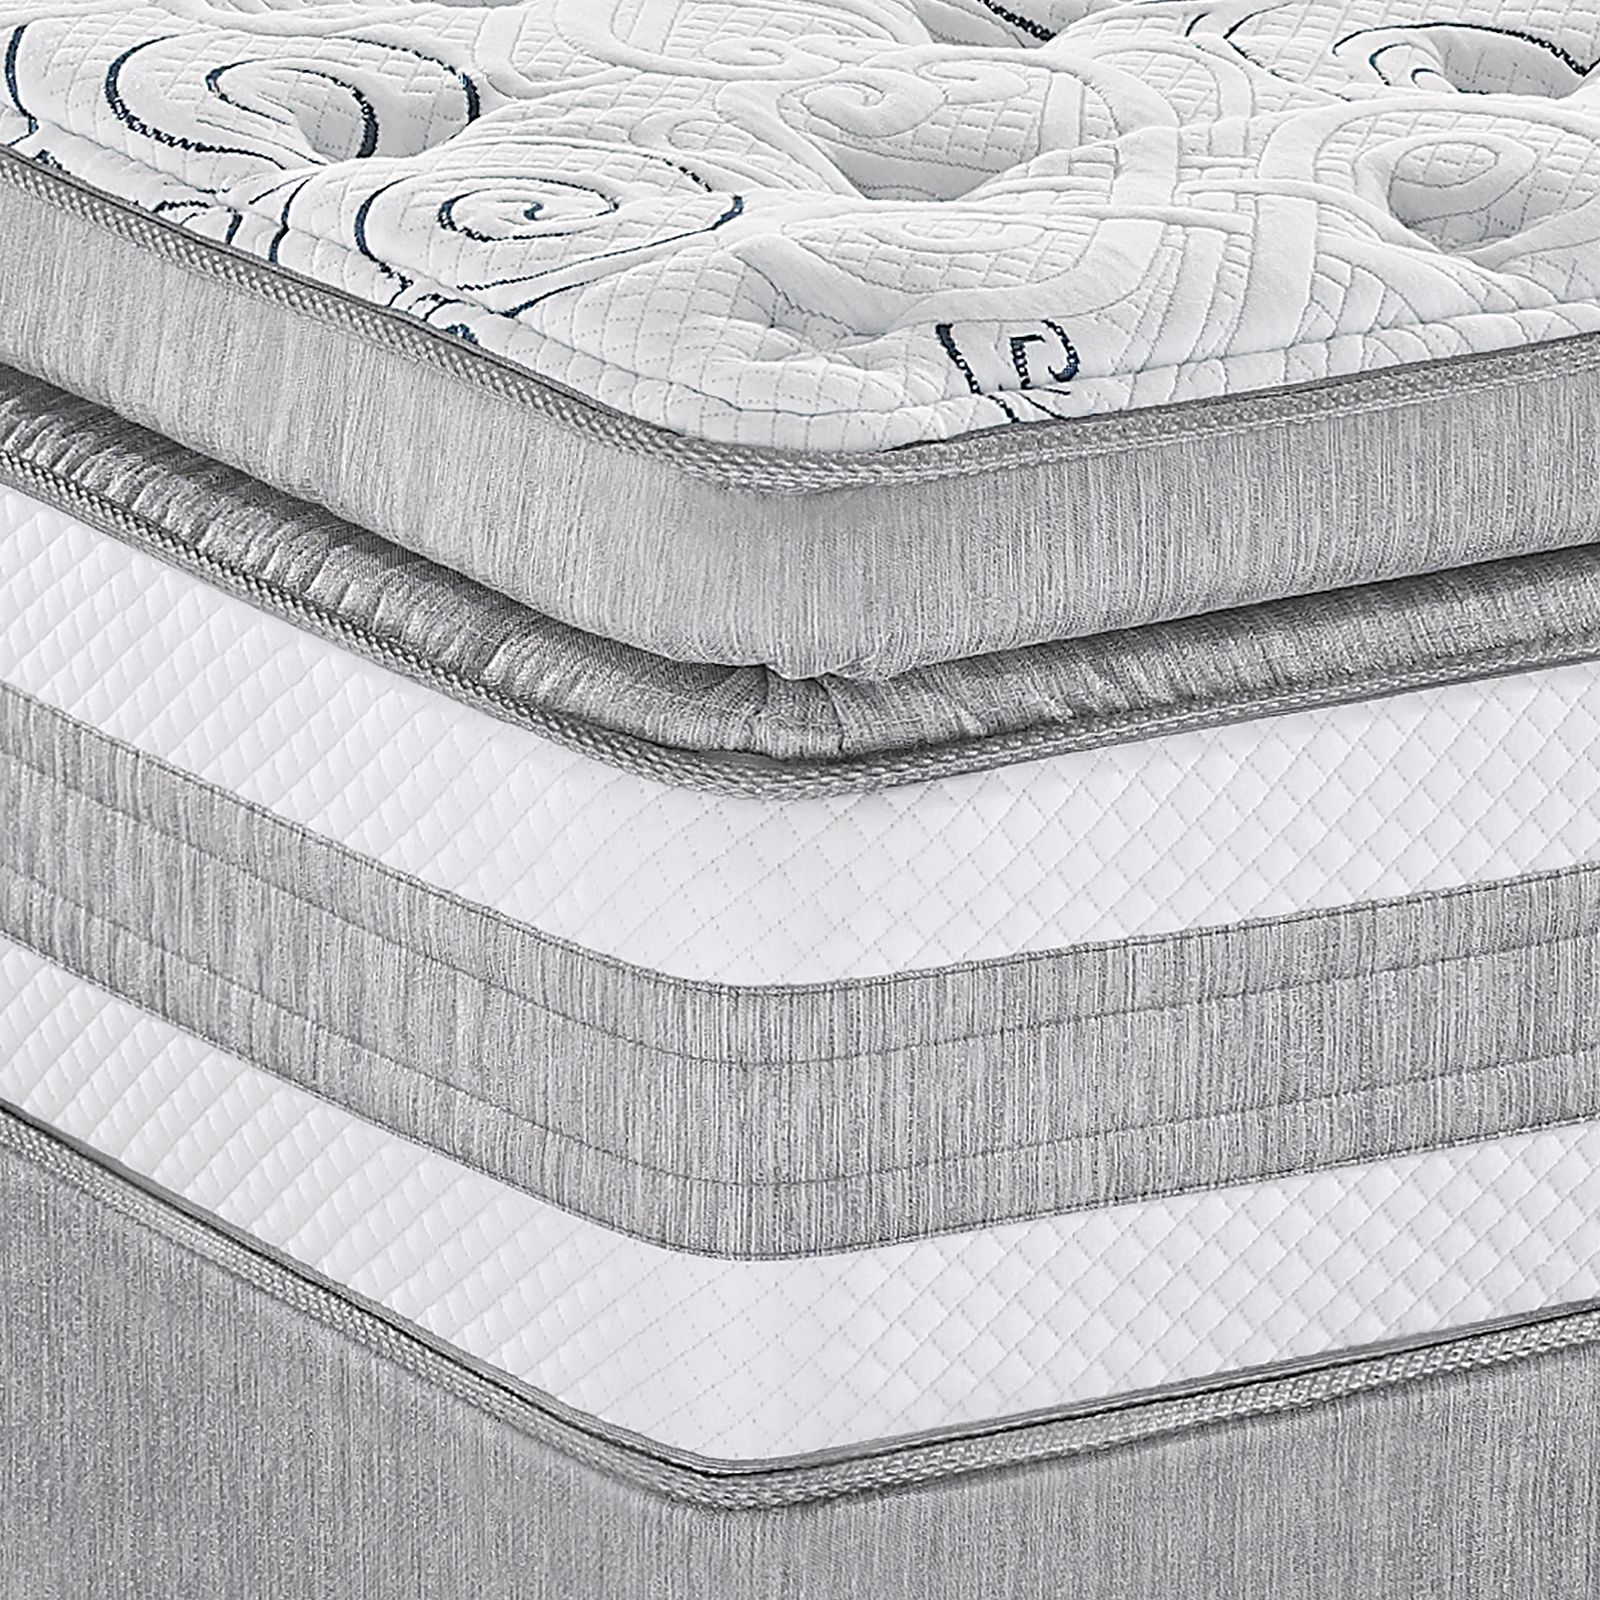 of get topper cushion bee home benefits plan the gallery can top mattress you with pillow